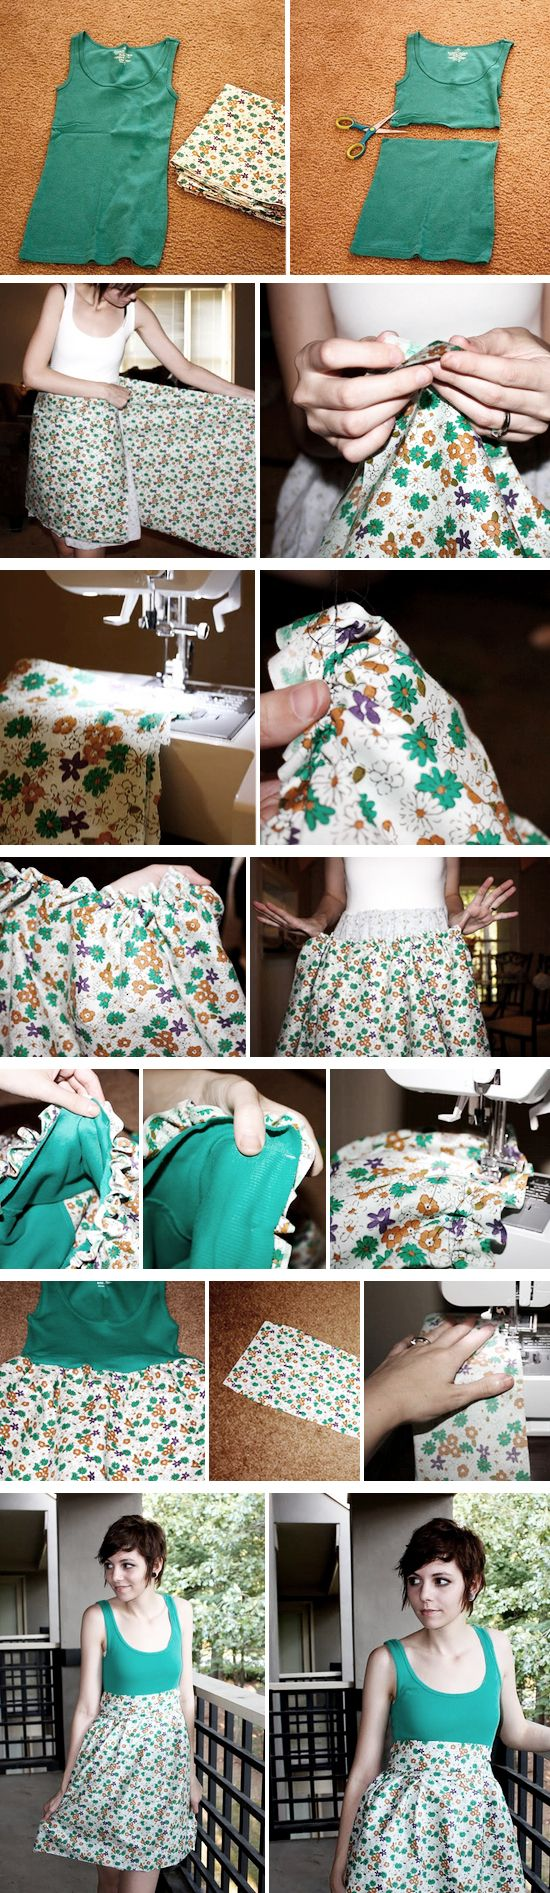 cute dress for $6...find more http://papernstitchblog.com/2011/08/16/how-to-make-an-insanely-cute-dress-on-a-shoestring-budget-tutorial/